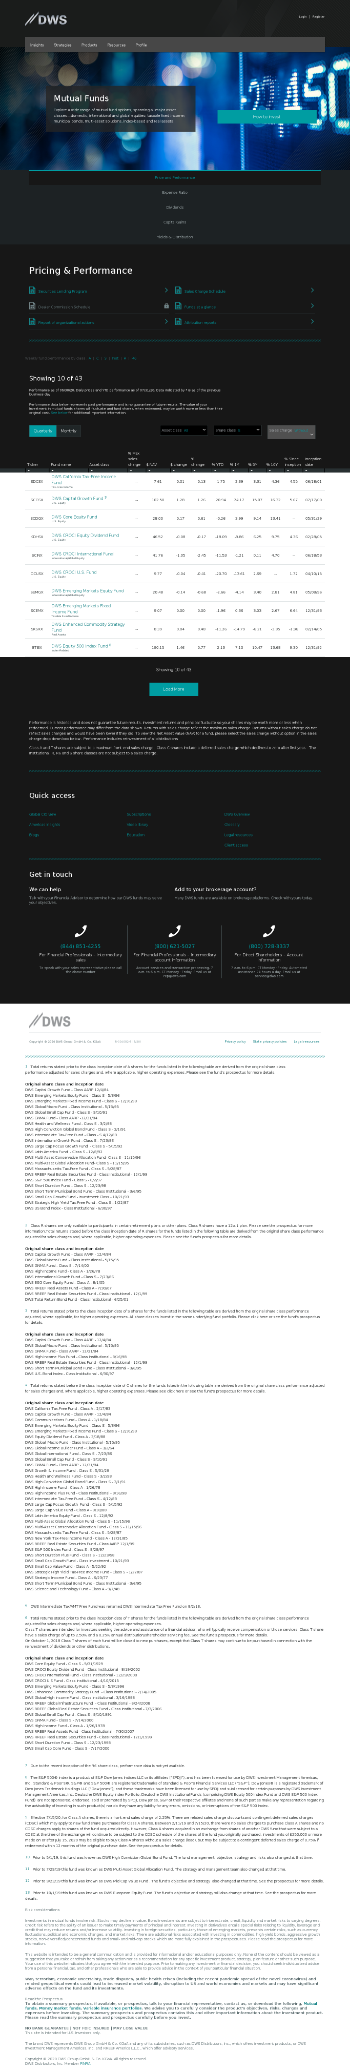 DWS Municipal Income Trust Website Screenshot